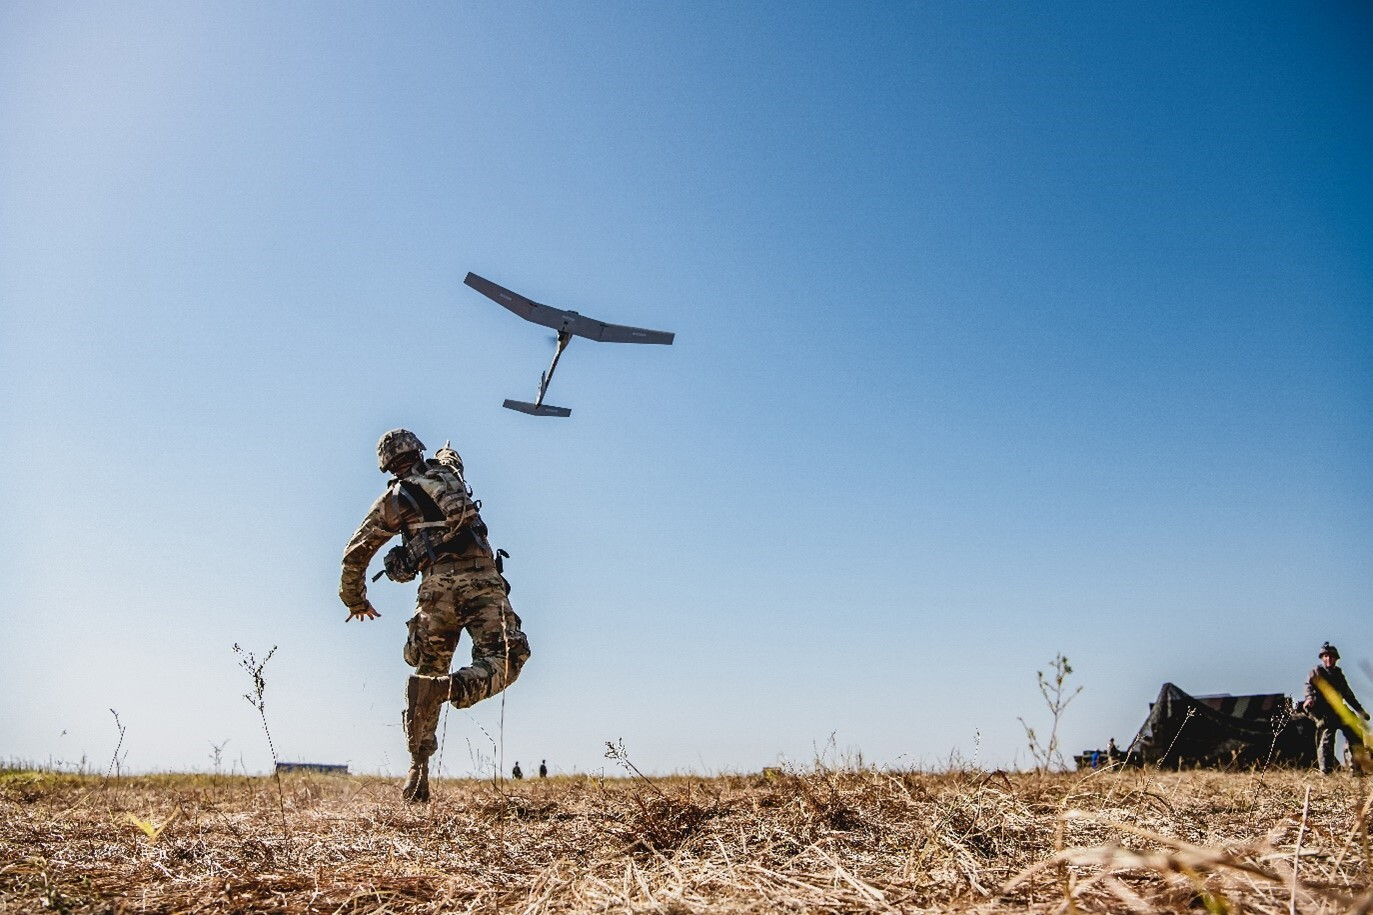 soldier launches uas